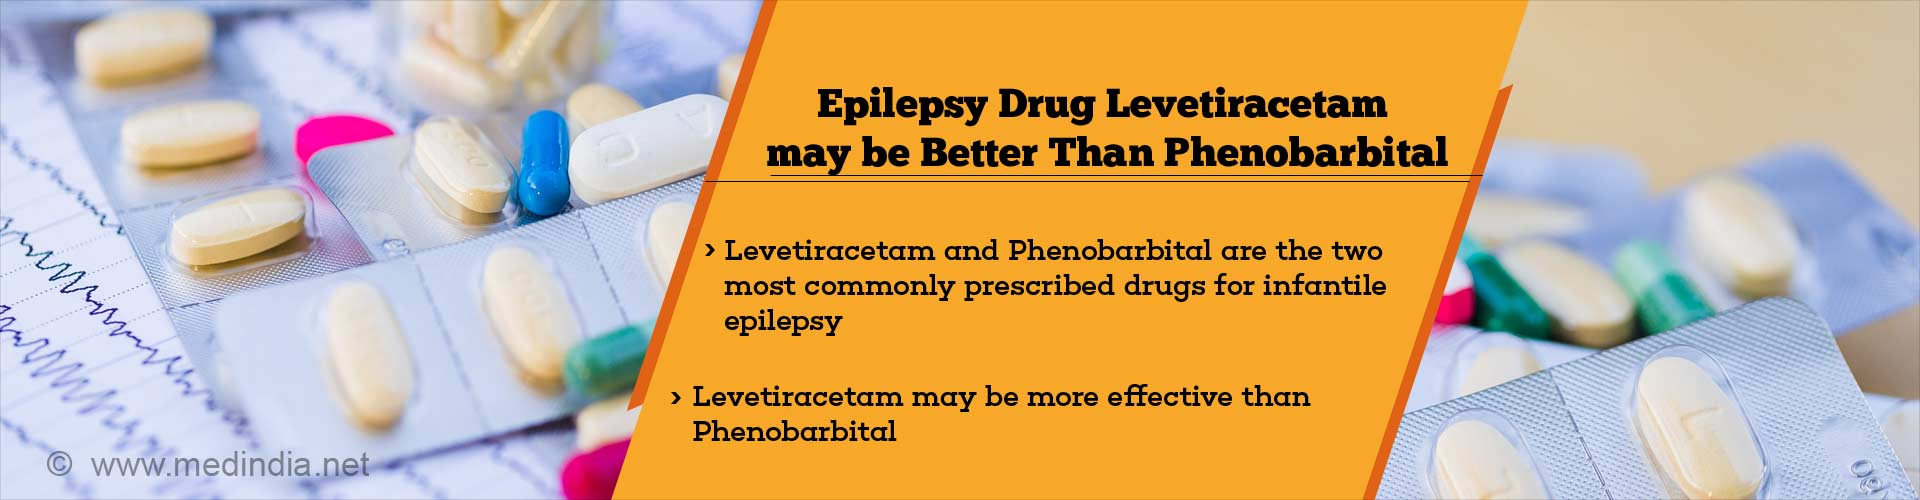 Epilepsy Drug Levetiracetam may be Better Than Phenobarbital